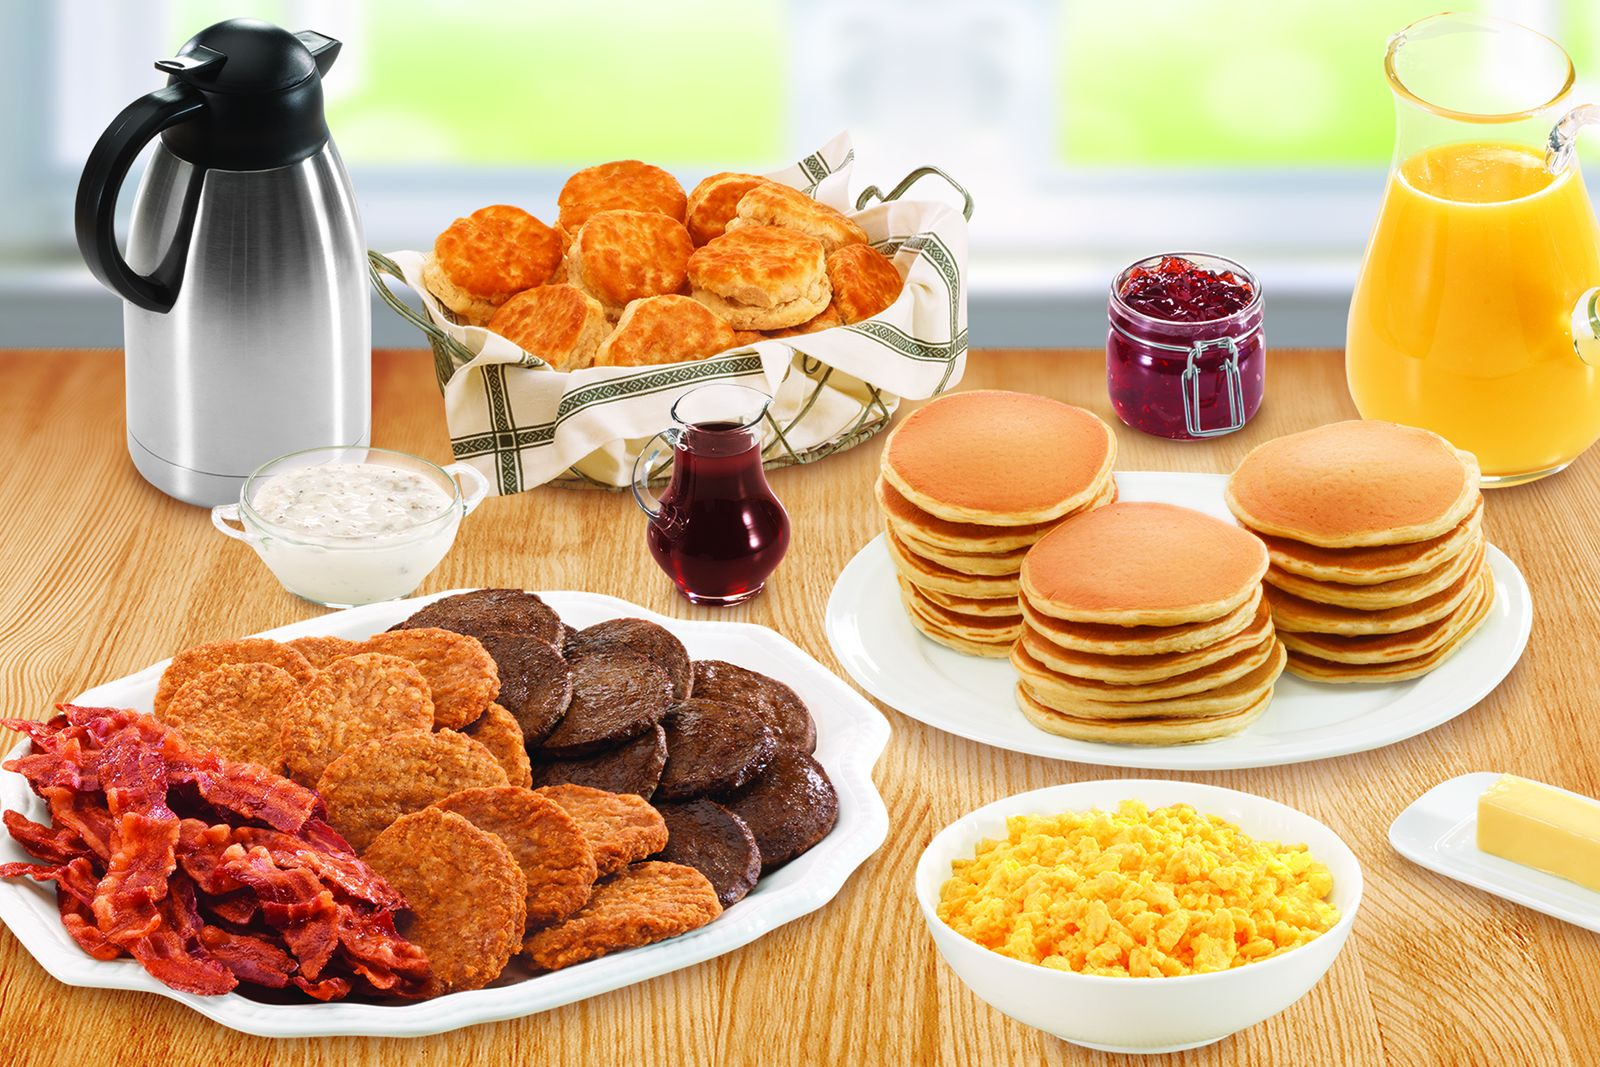 Grandy's Opens First Location in Murfreesboro, Tennessee